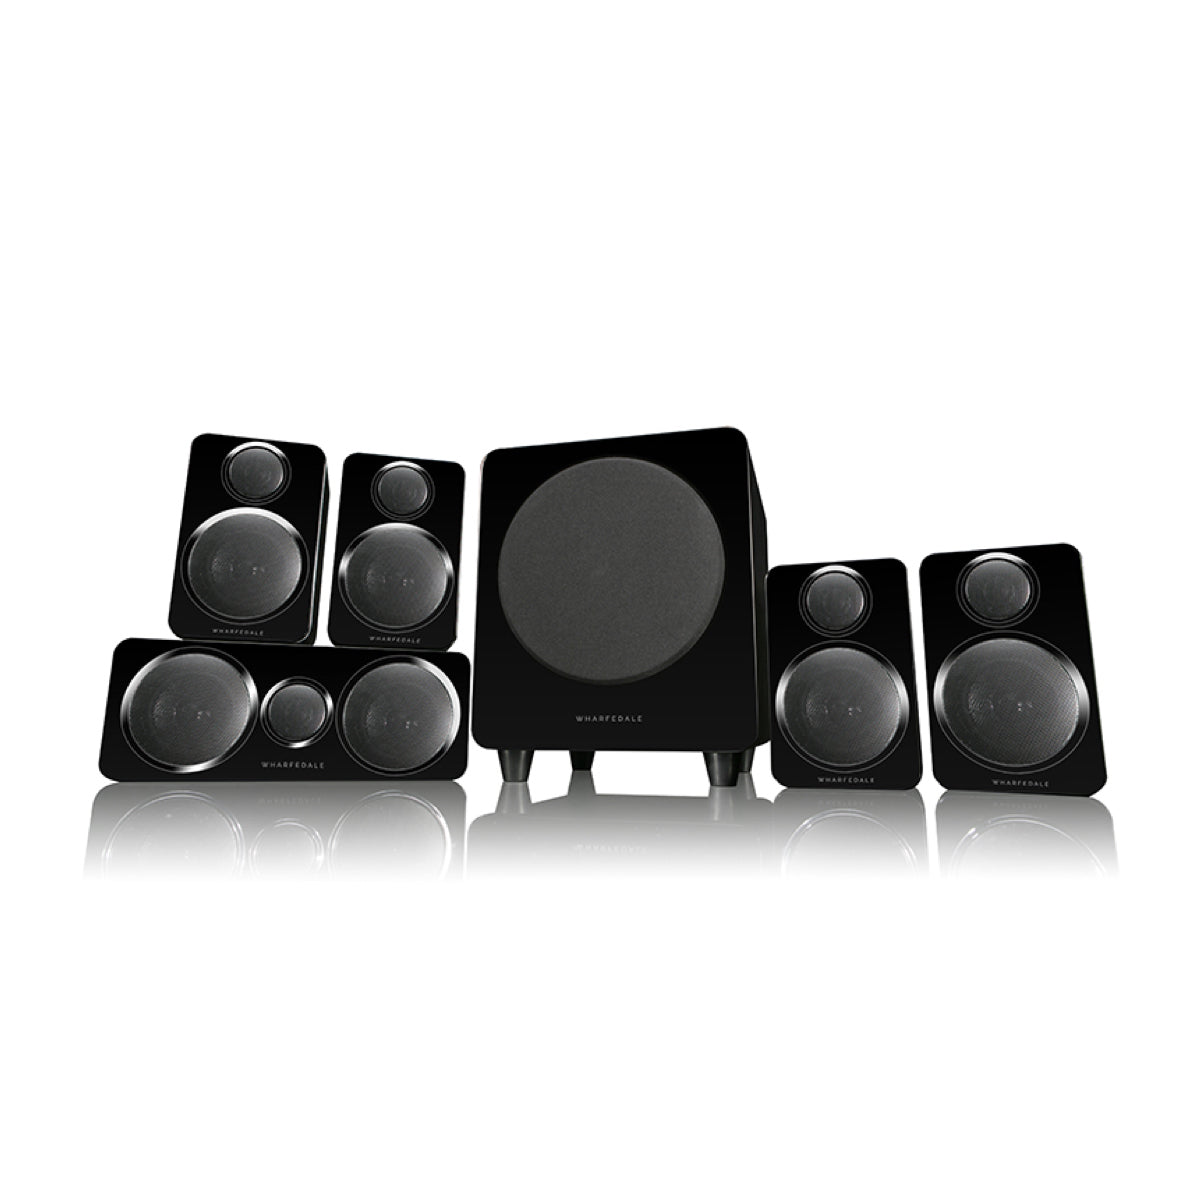 Wharfedale DX2 (Home Cinema Speaker Package), Wharfedale, 5.1 Speaker Package - AVStore.in